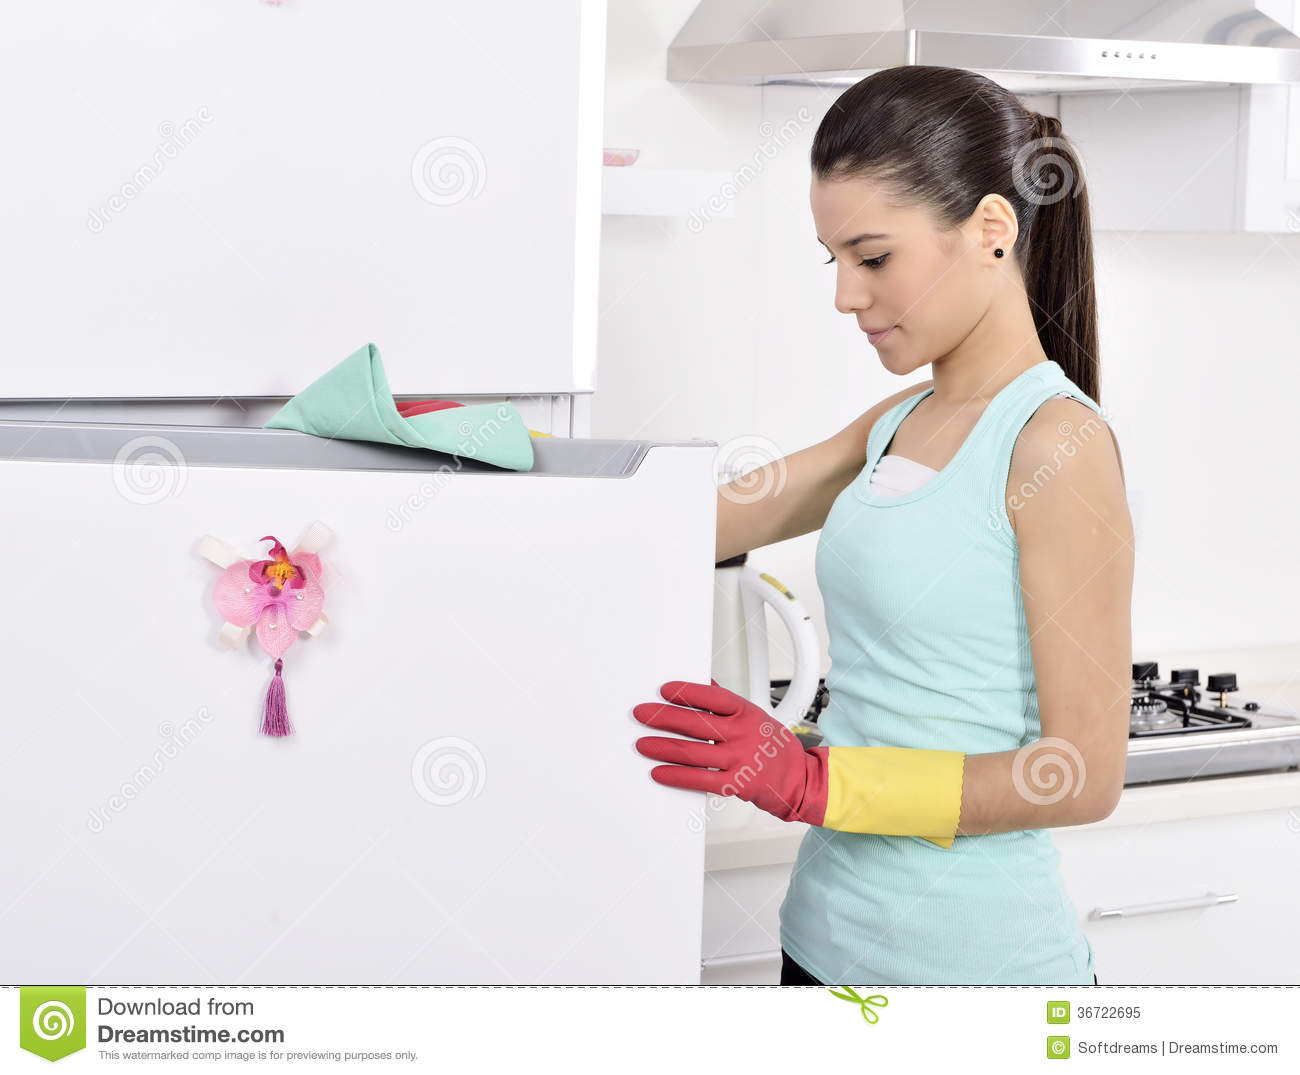 Cleaning The House Royalty Free Stock Photo Image 36722695